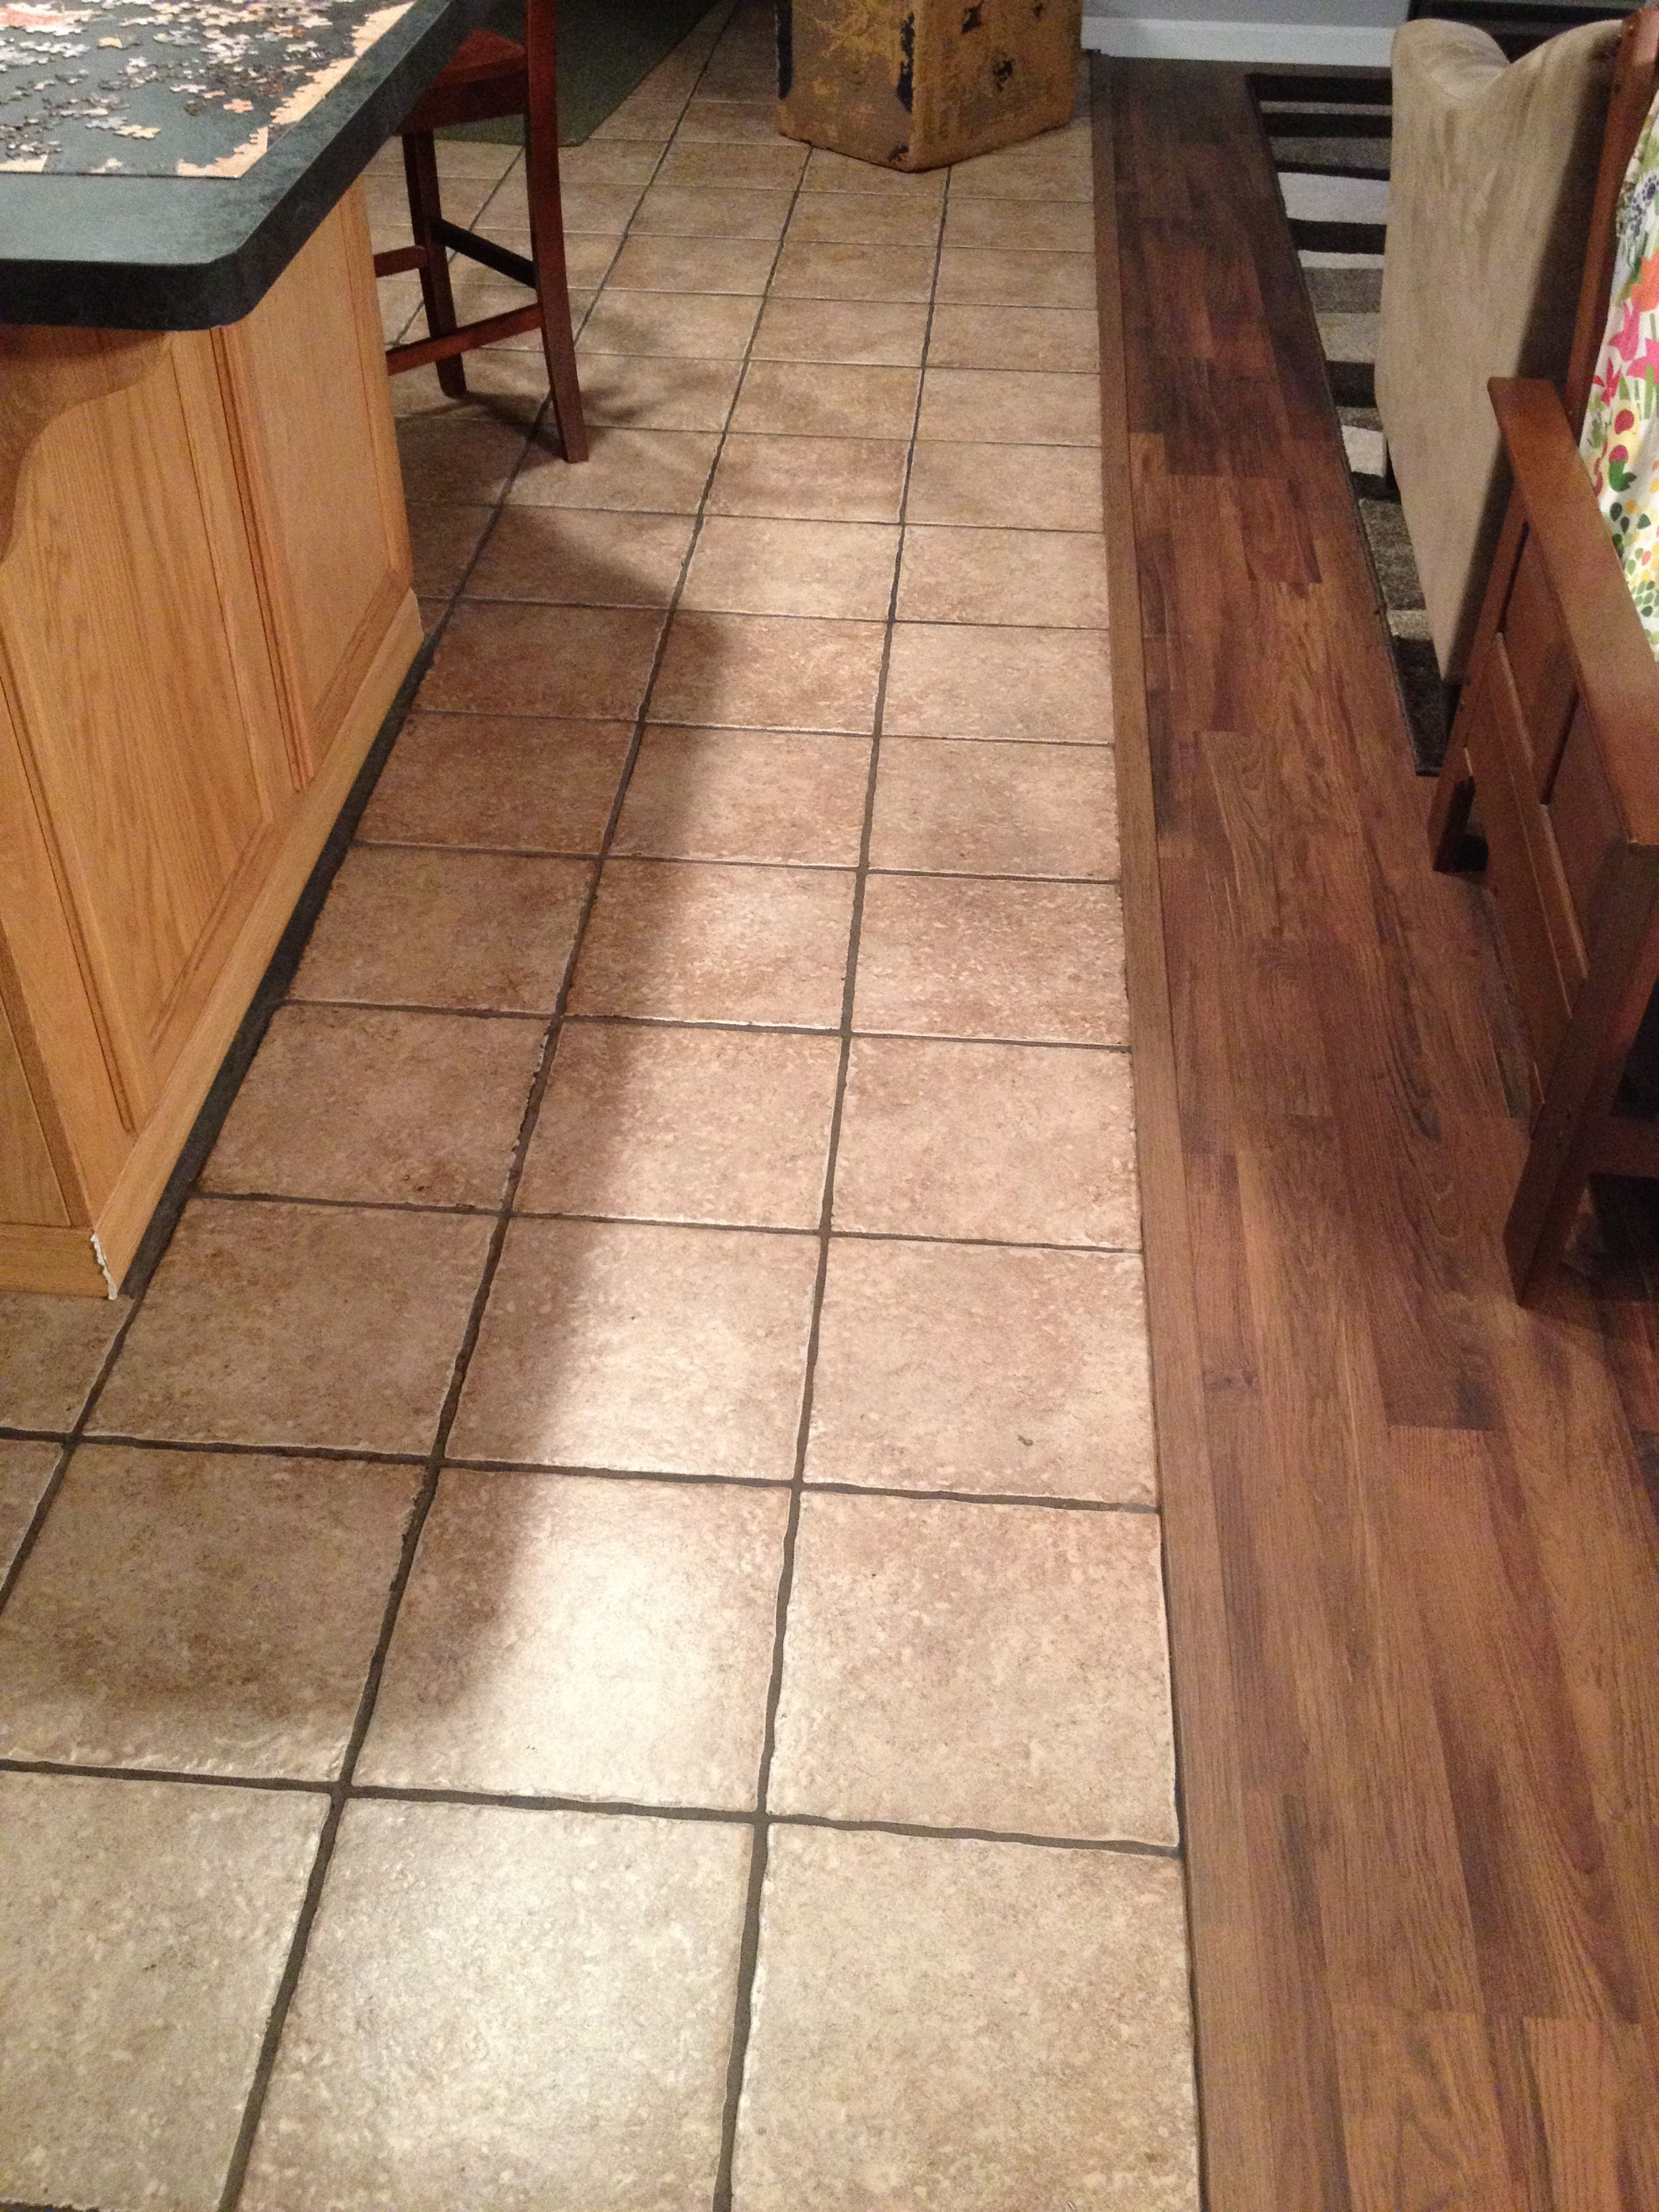 Shaw Floating Laminate Flooring Cabin Color With Matching Transition Piece To Tile